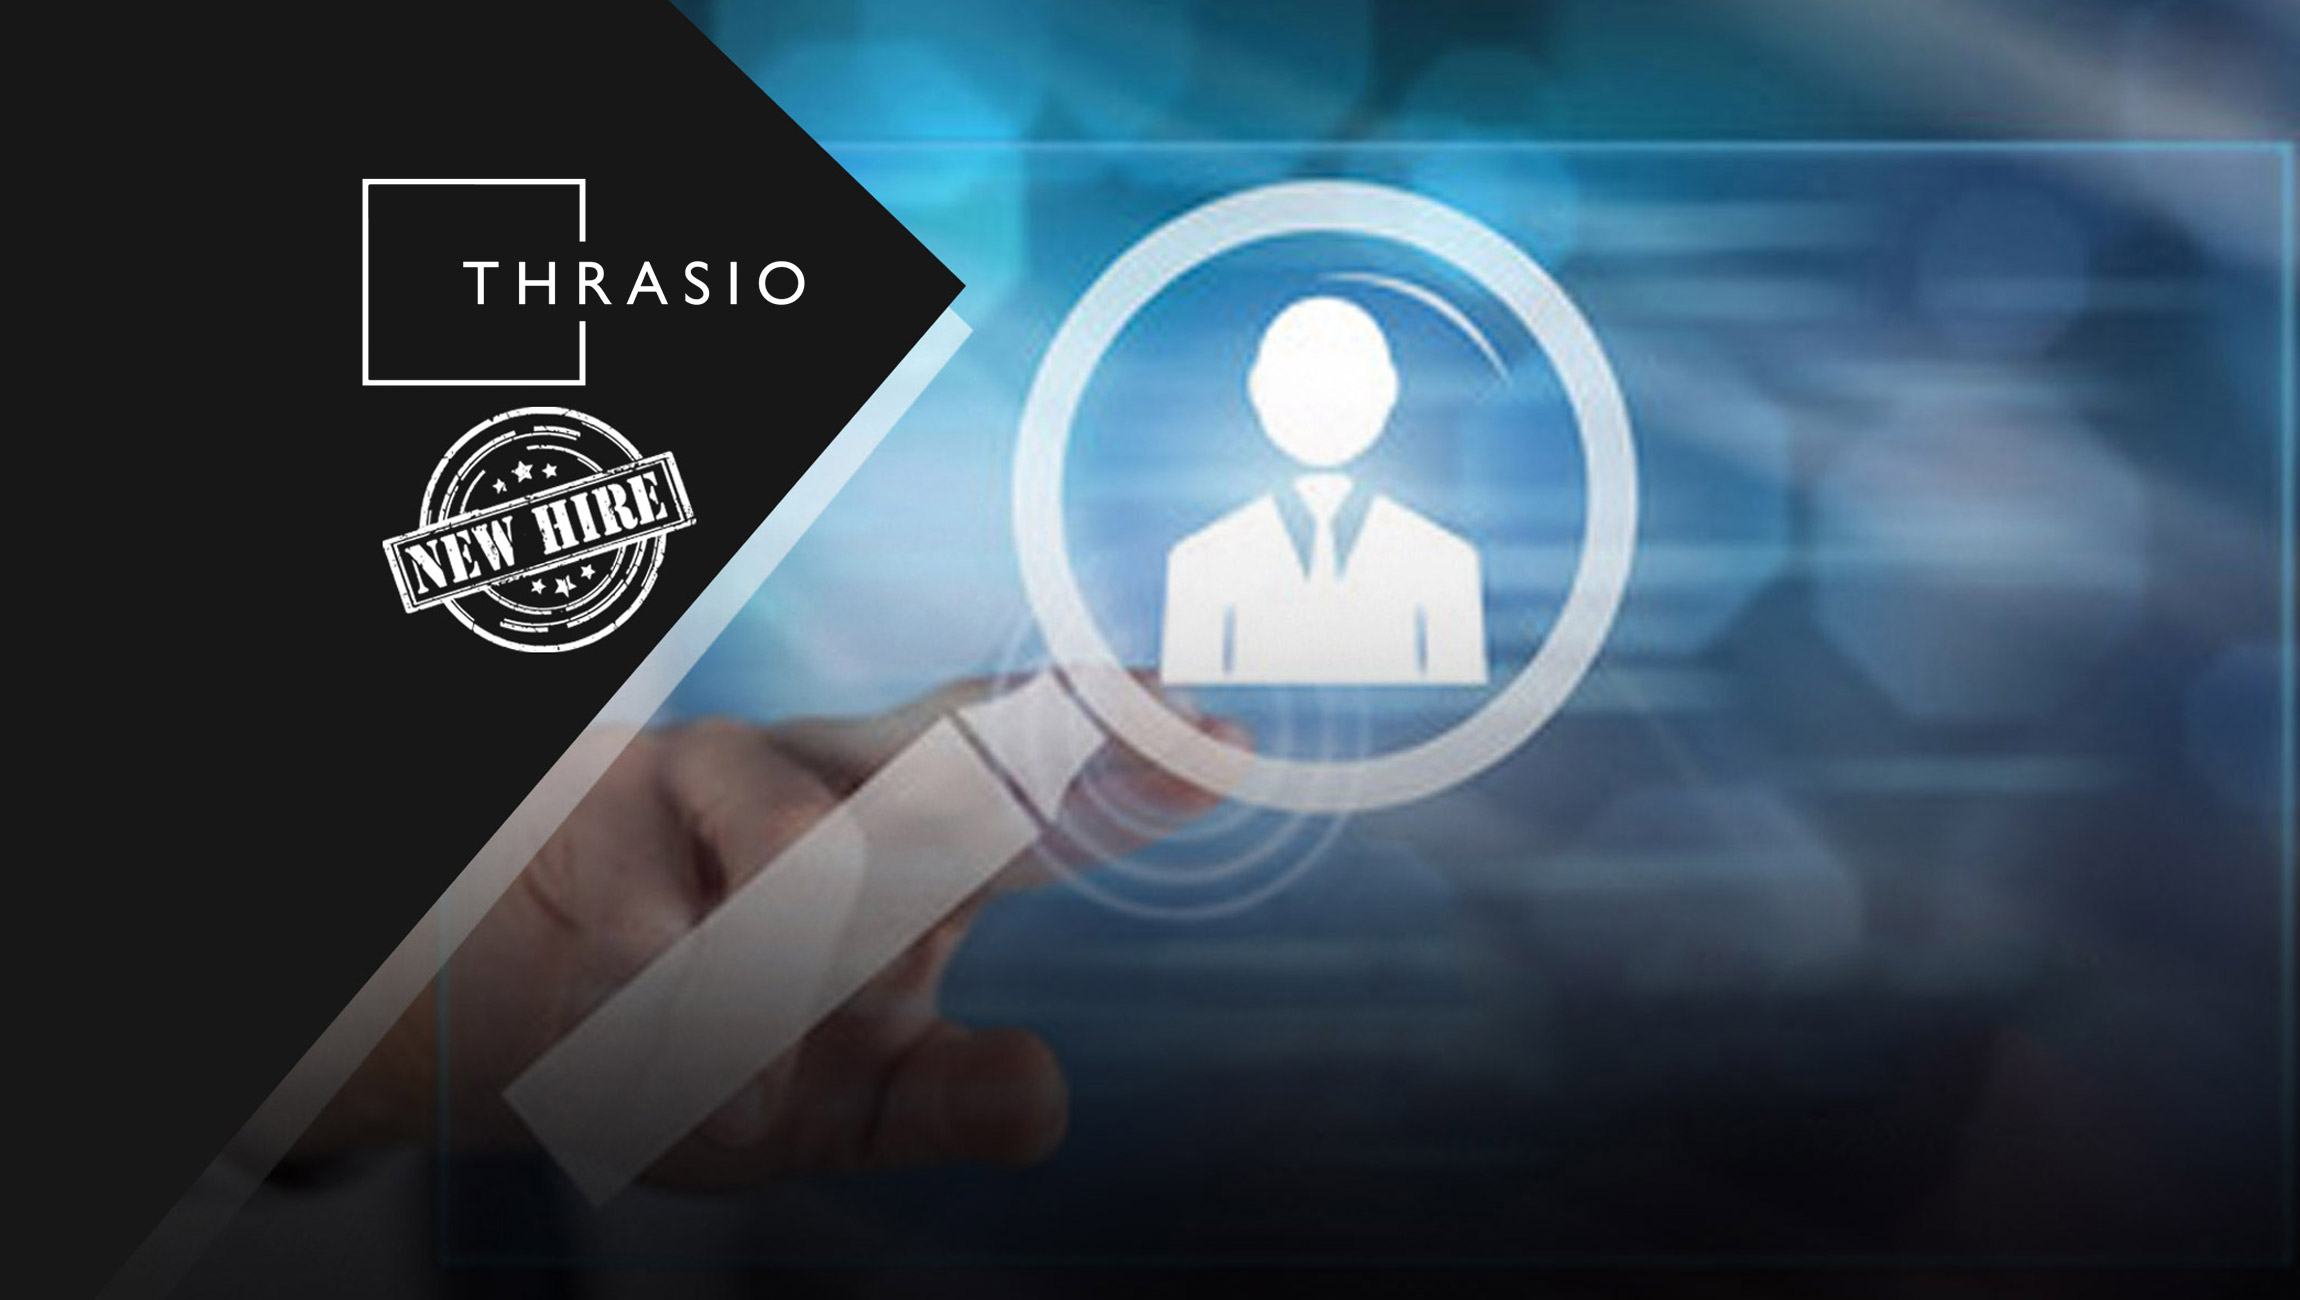 Thrasio Appoints CPG Industry Veteran As CFO And Brings Total Equity Raised In Q1 '21 To $850 million